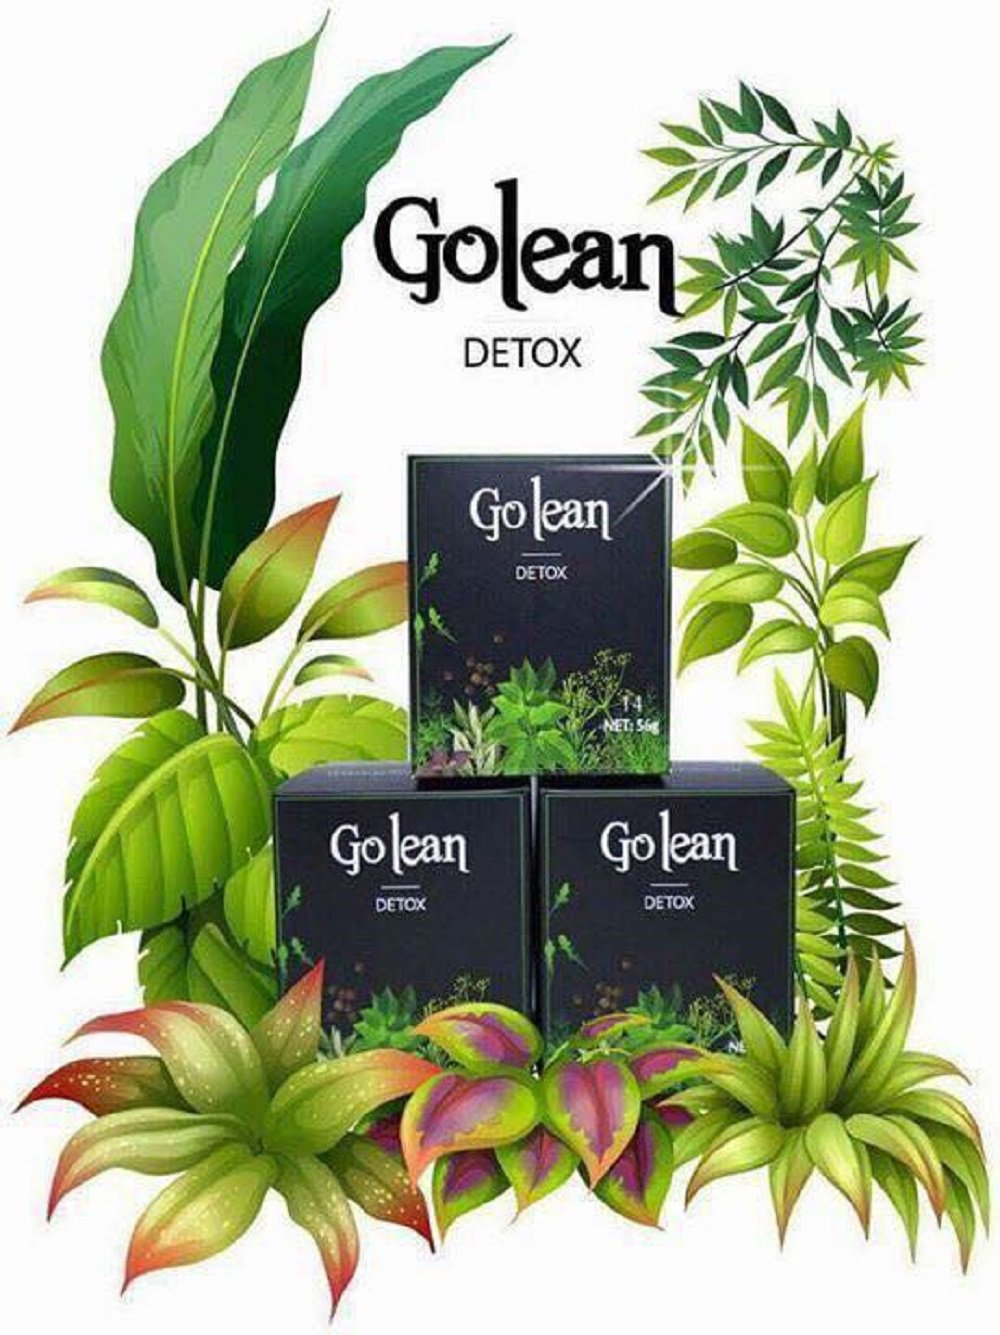 1 Box x 14 Capsules - Golean Detox herbal tea help weight loss, 100% Natural Weight Loss Tablets by Mat Xi S.G Co.Ltd - Vietnam